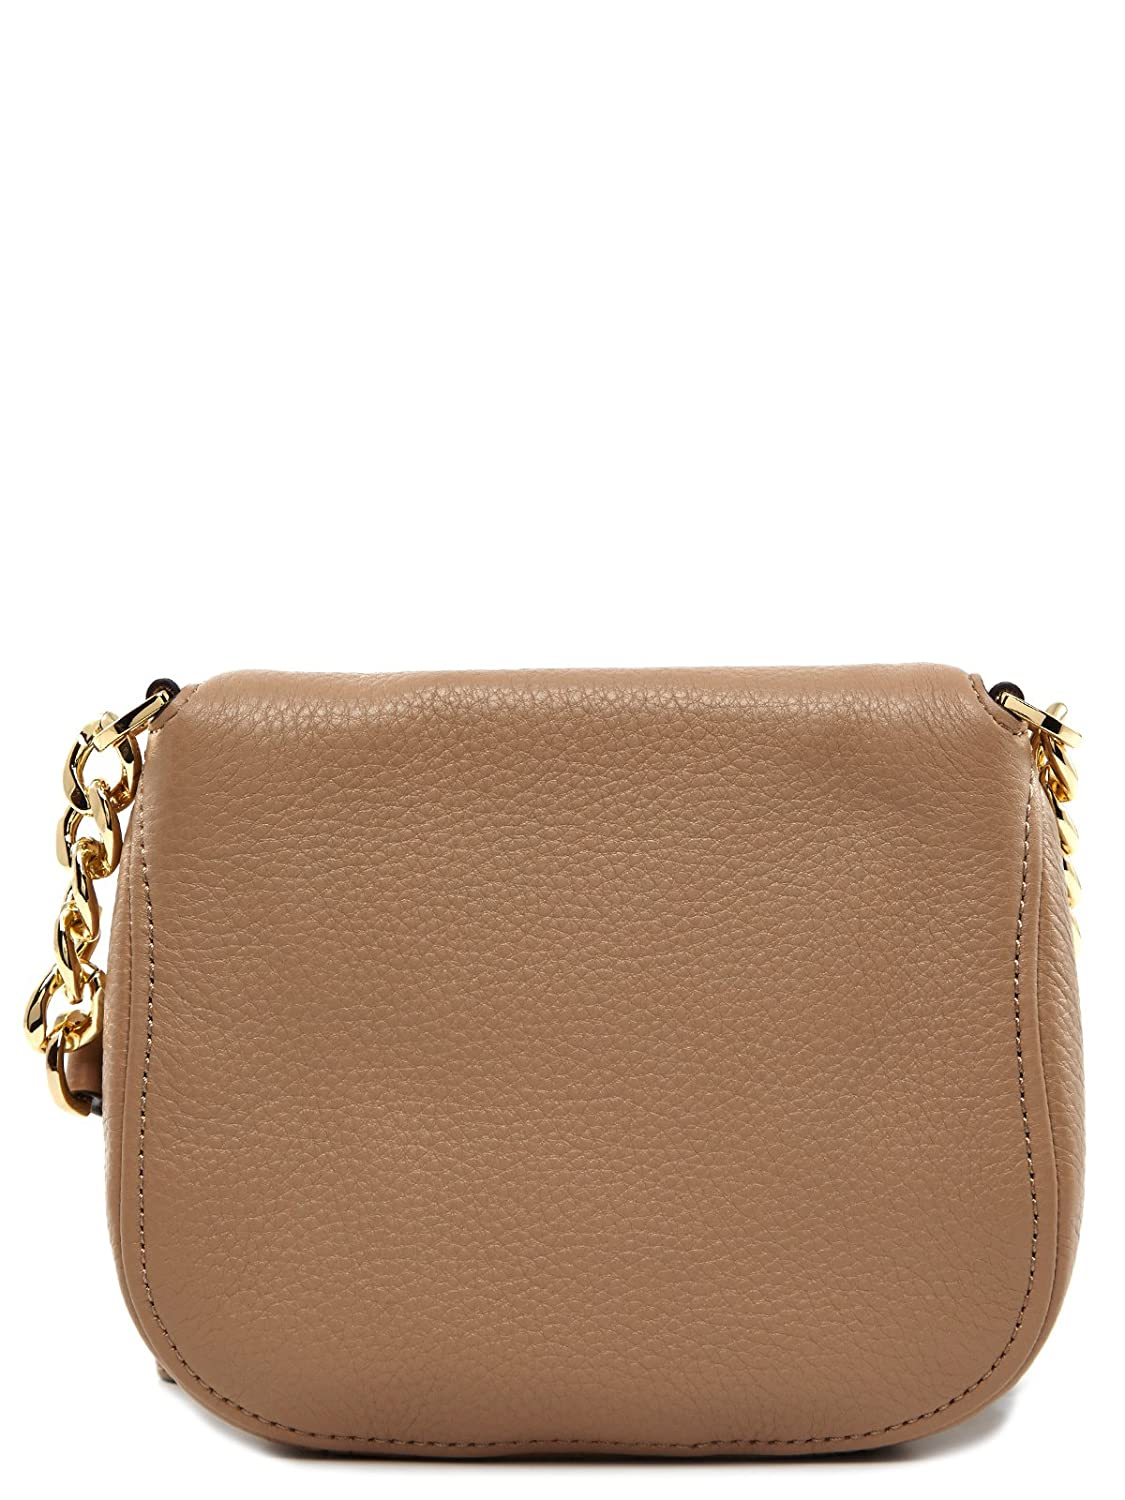 cfce121f02e5 Michael Kors Bedford Flap Beige Leather Crossbody Bag Beige Leather: Amazon. co.uk: Shoes & Bags